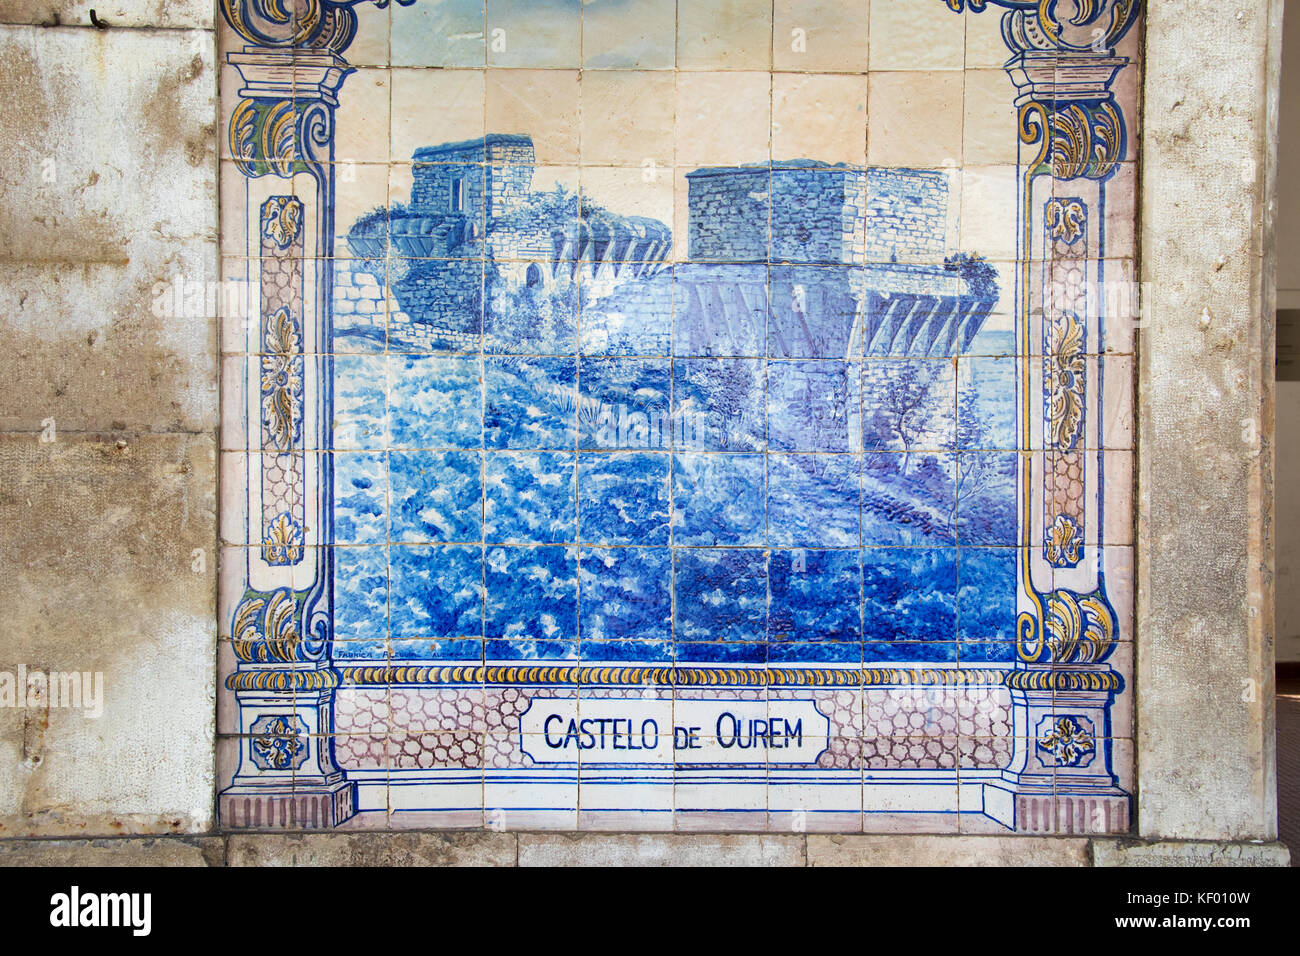 Blue Tile Mural Stock Photos & Blue Tile Mural Stock Images - Alamy